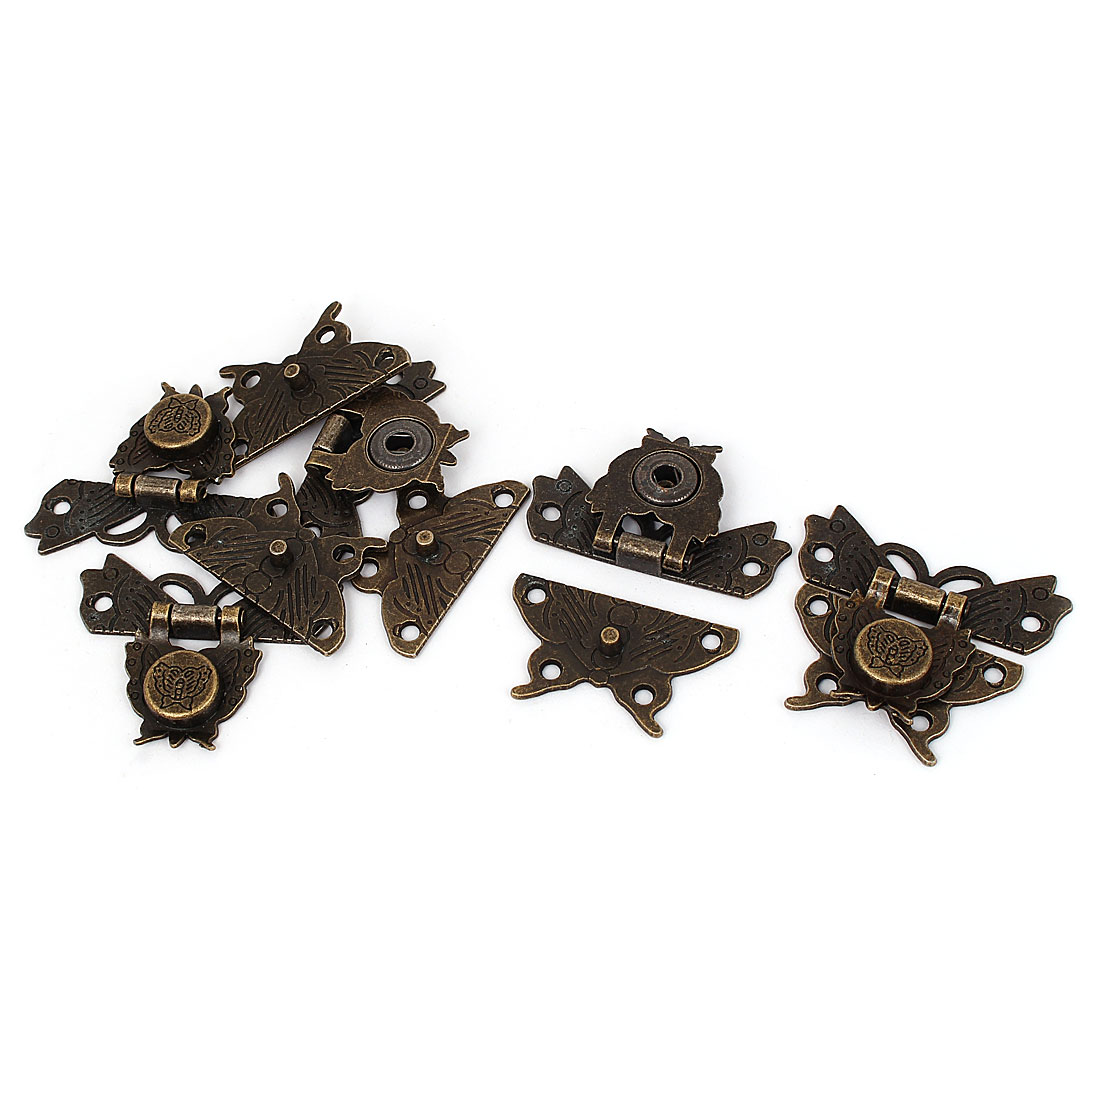 Antique Style Butterfly Shape Box Hasp Lock Latch Bronze Tone 50 x 45mm 5pcs